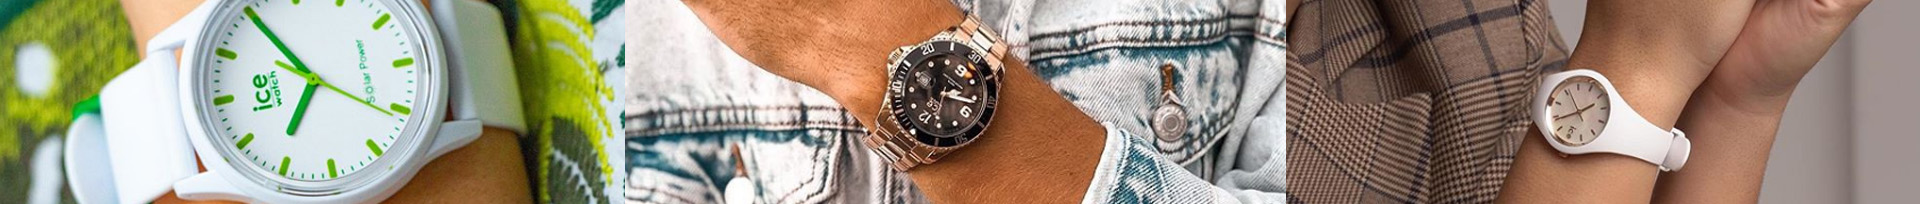 ice-watch-category-banner1.jpg